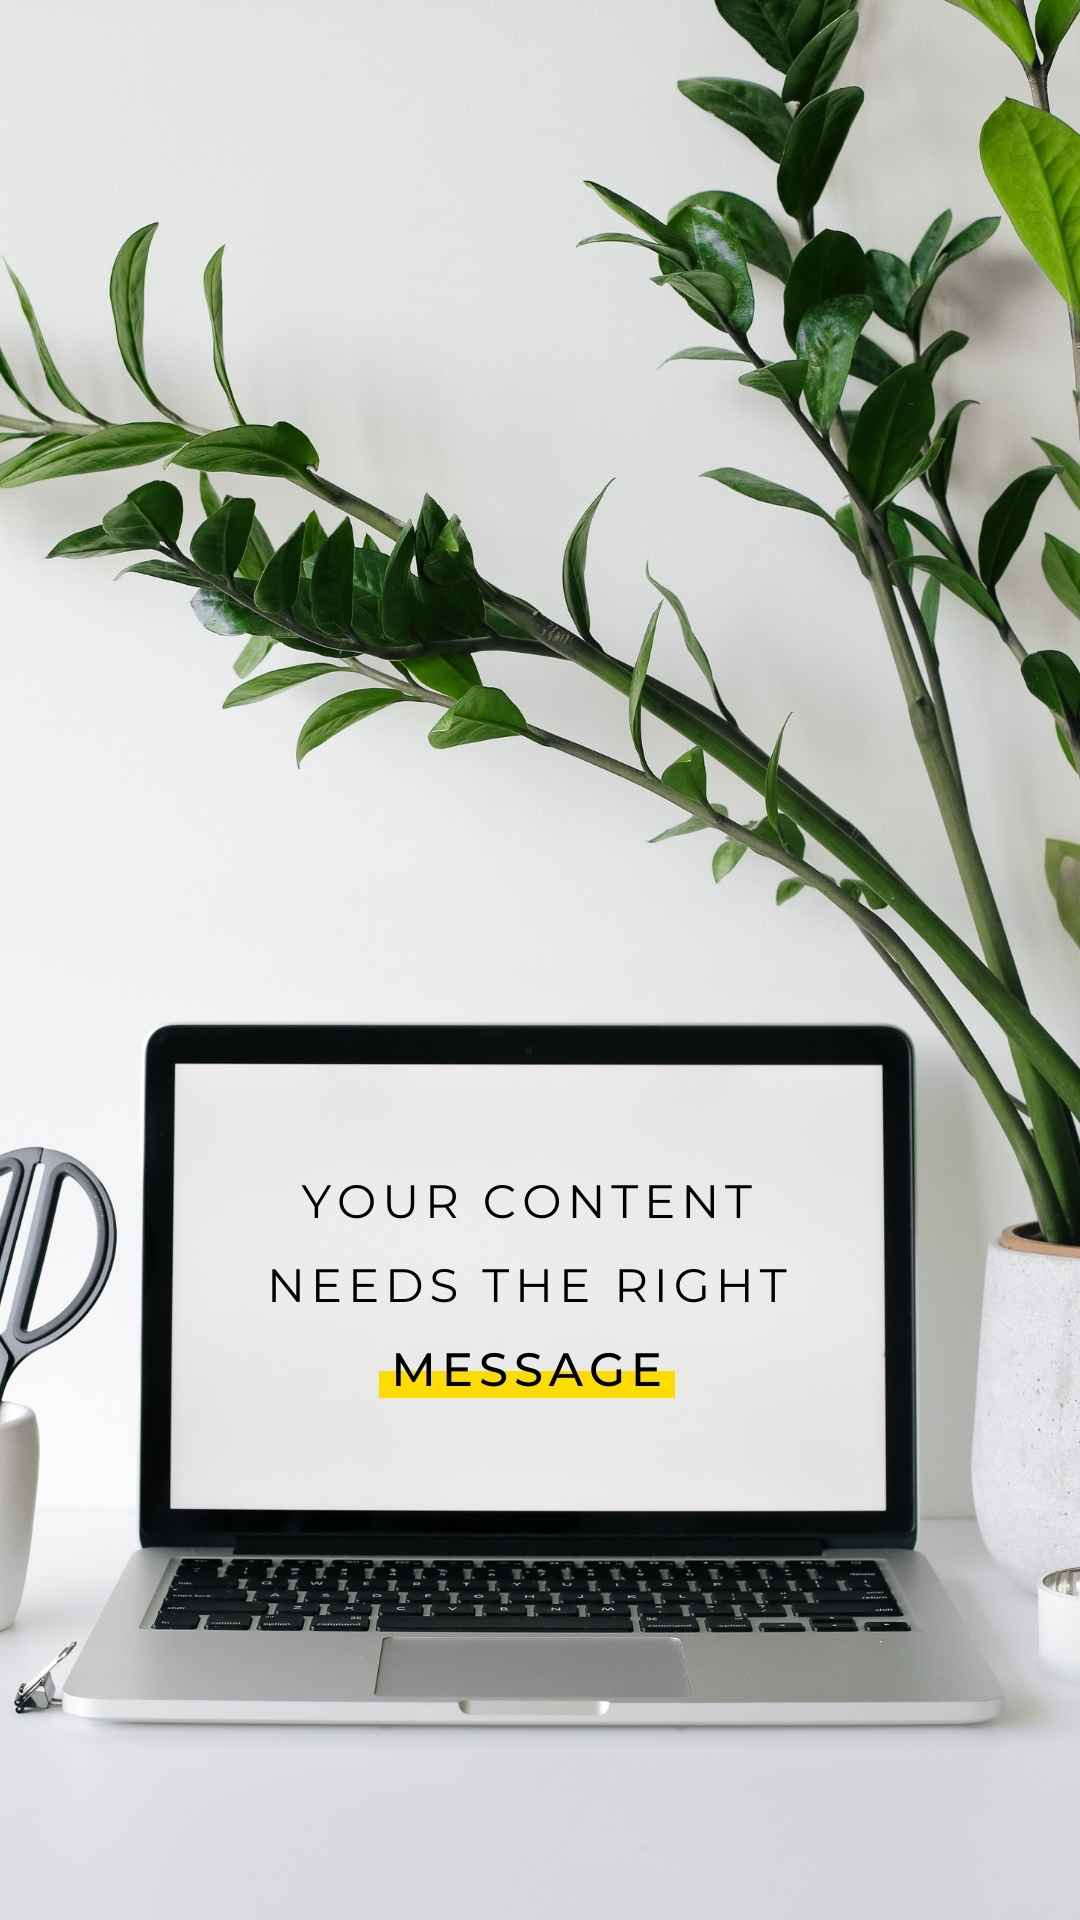 Your content needs the right message